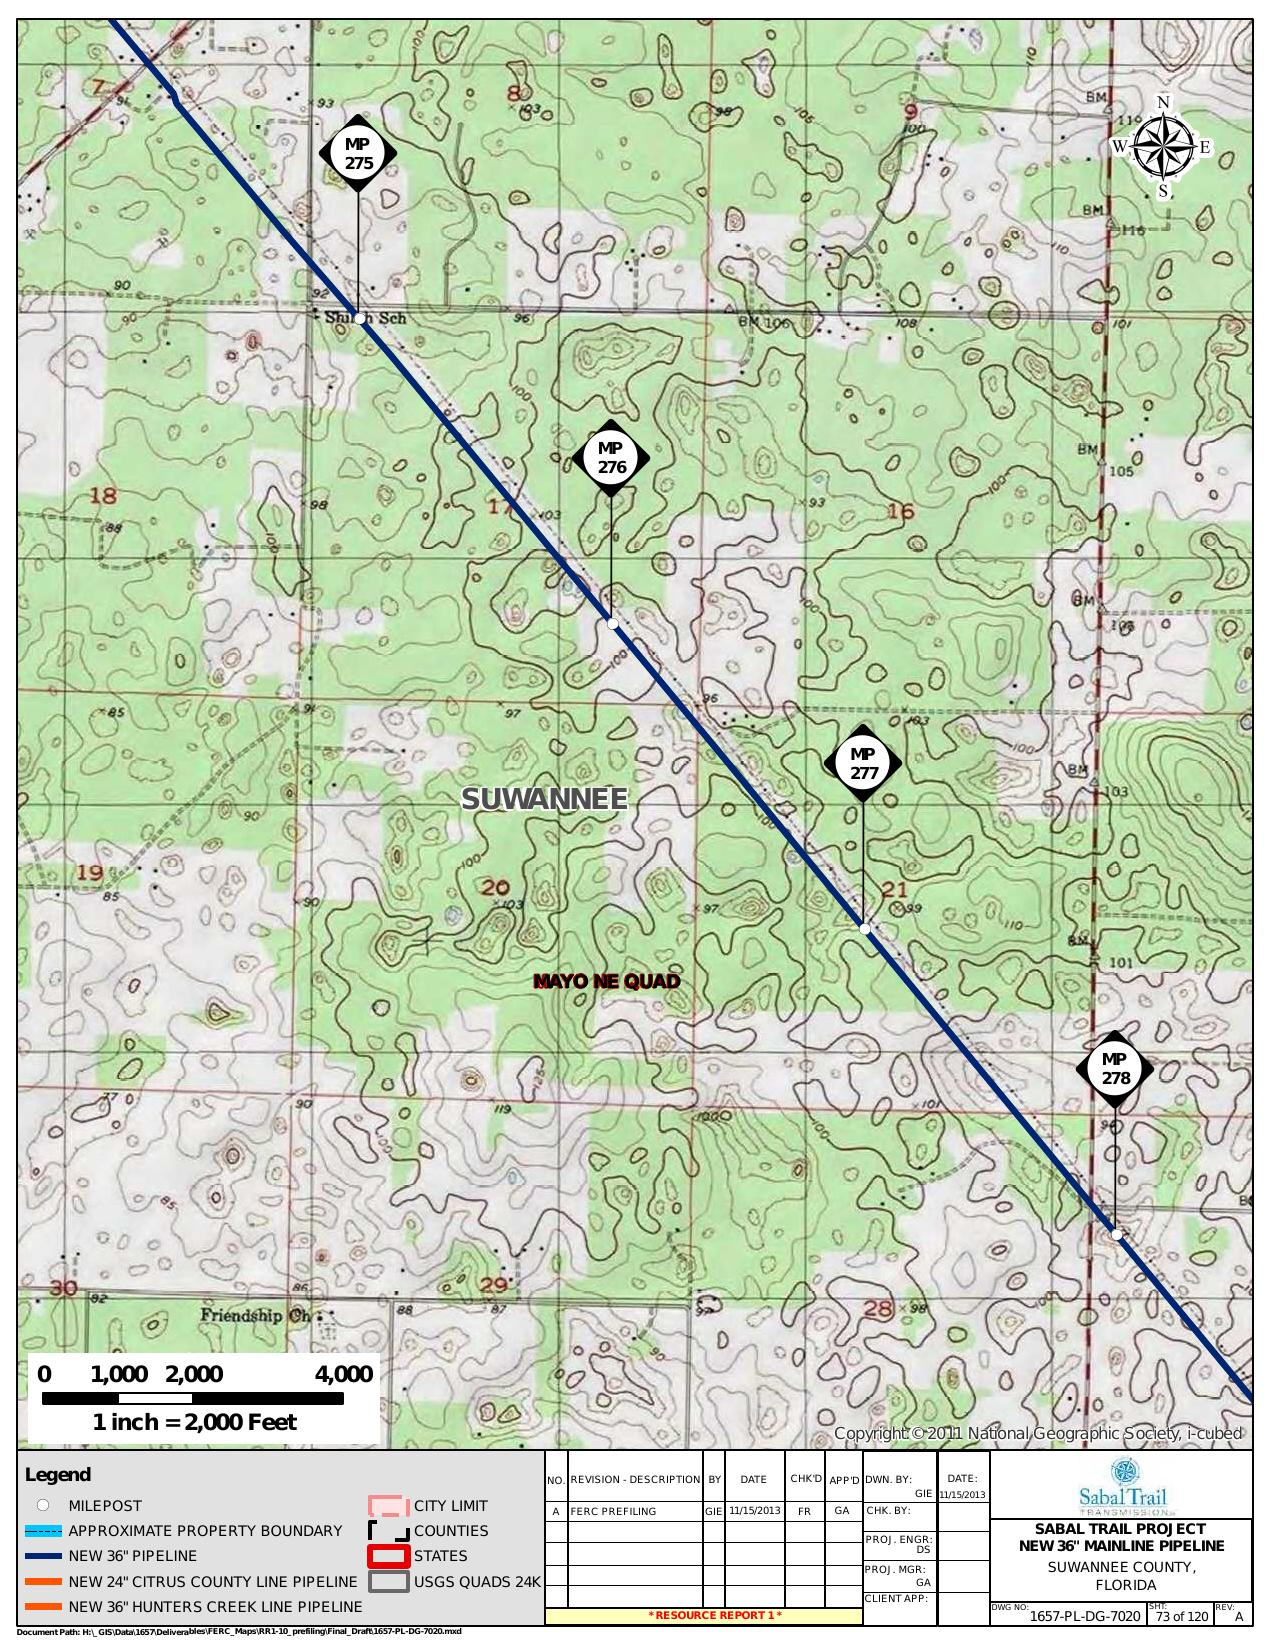 Shiloh School, Suwannee County, Florida, in General Project Description, by SpectraBusters, for FERC Docket No. PF14-1-000, 15 November 2013, converted by SpectraBusters